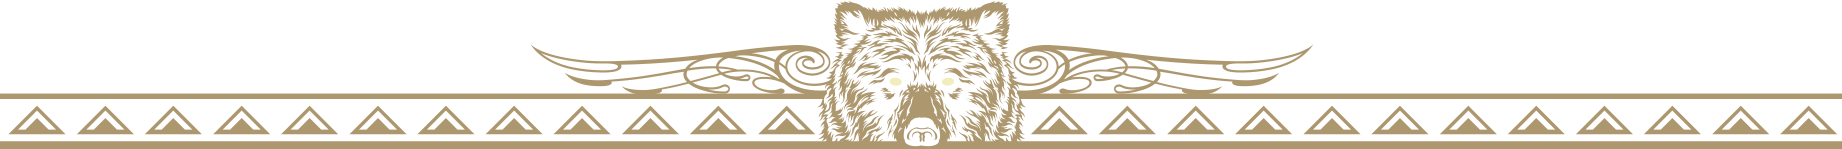 bearBanner.png